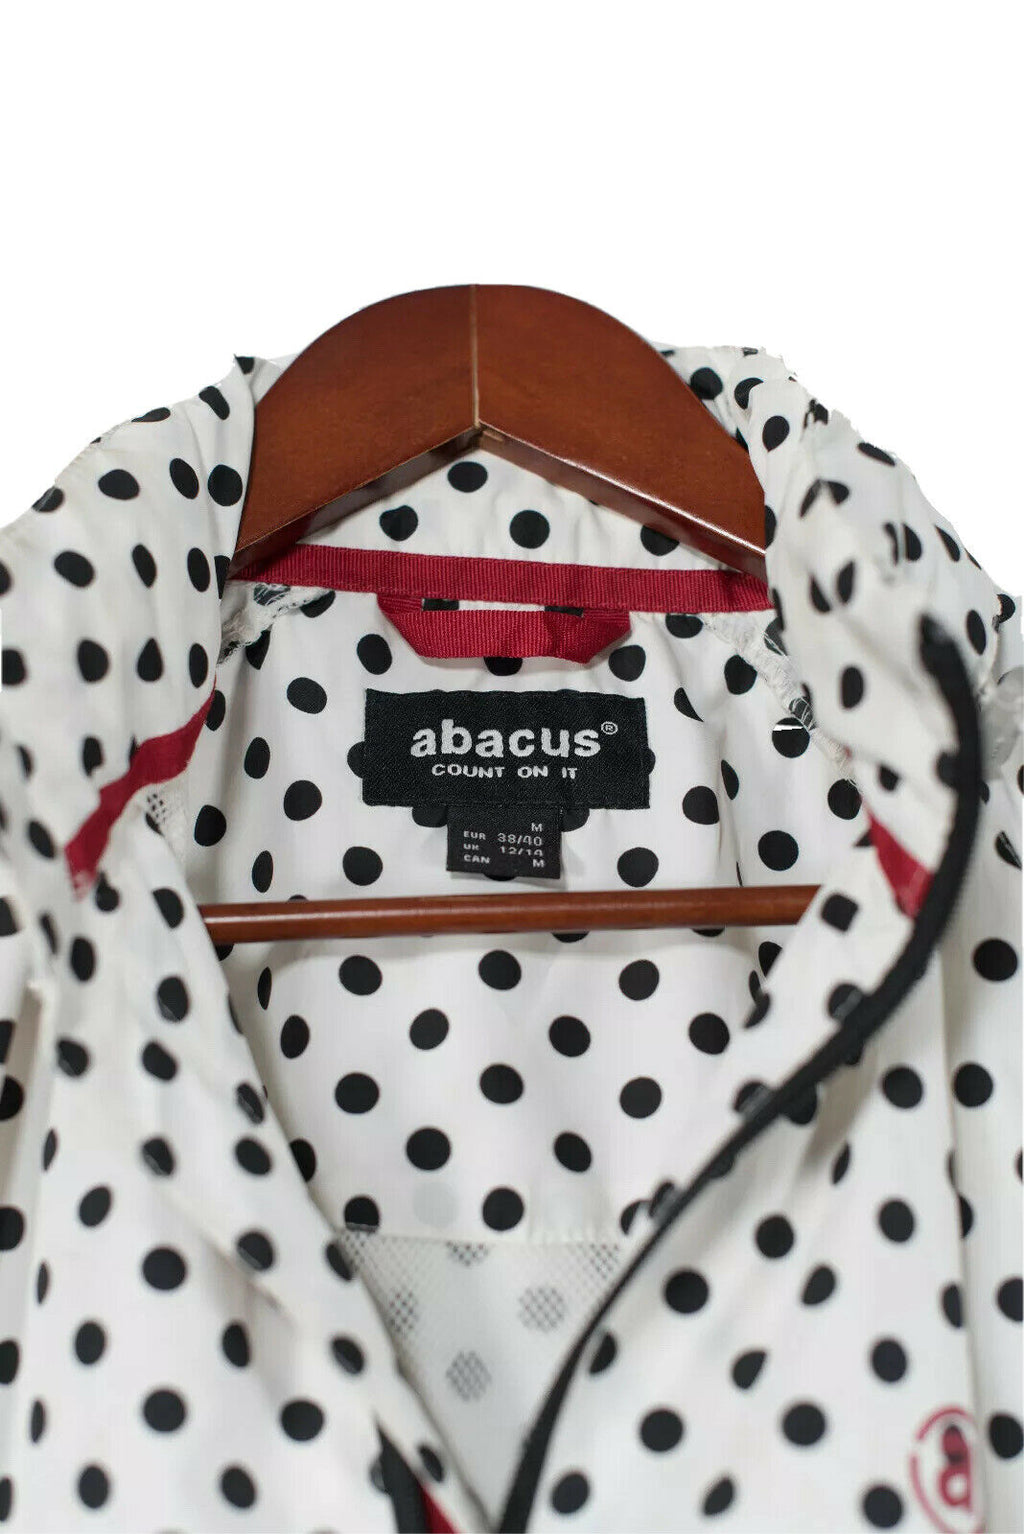 Abacus Size Medium Black White Polka Dot Windbreaker Jacket